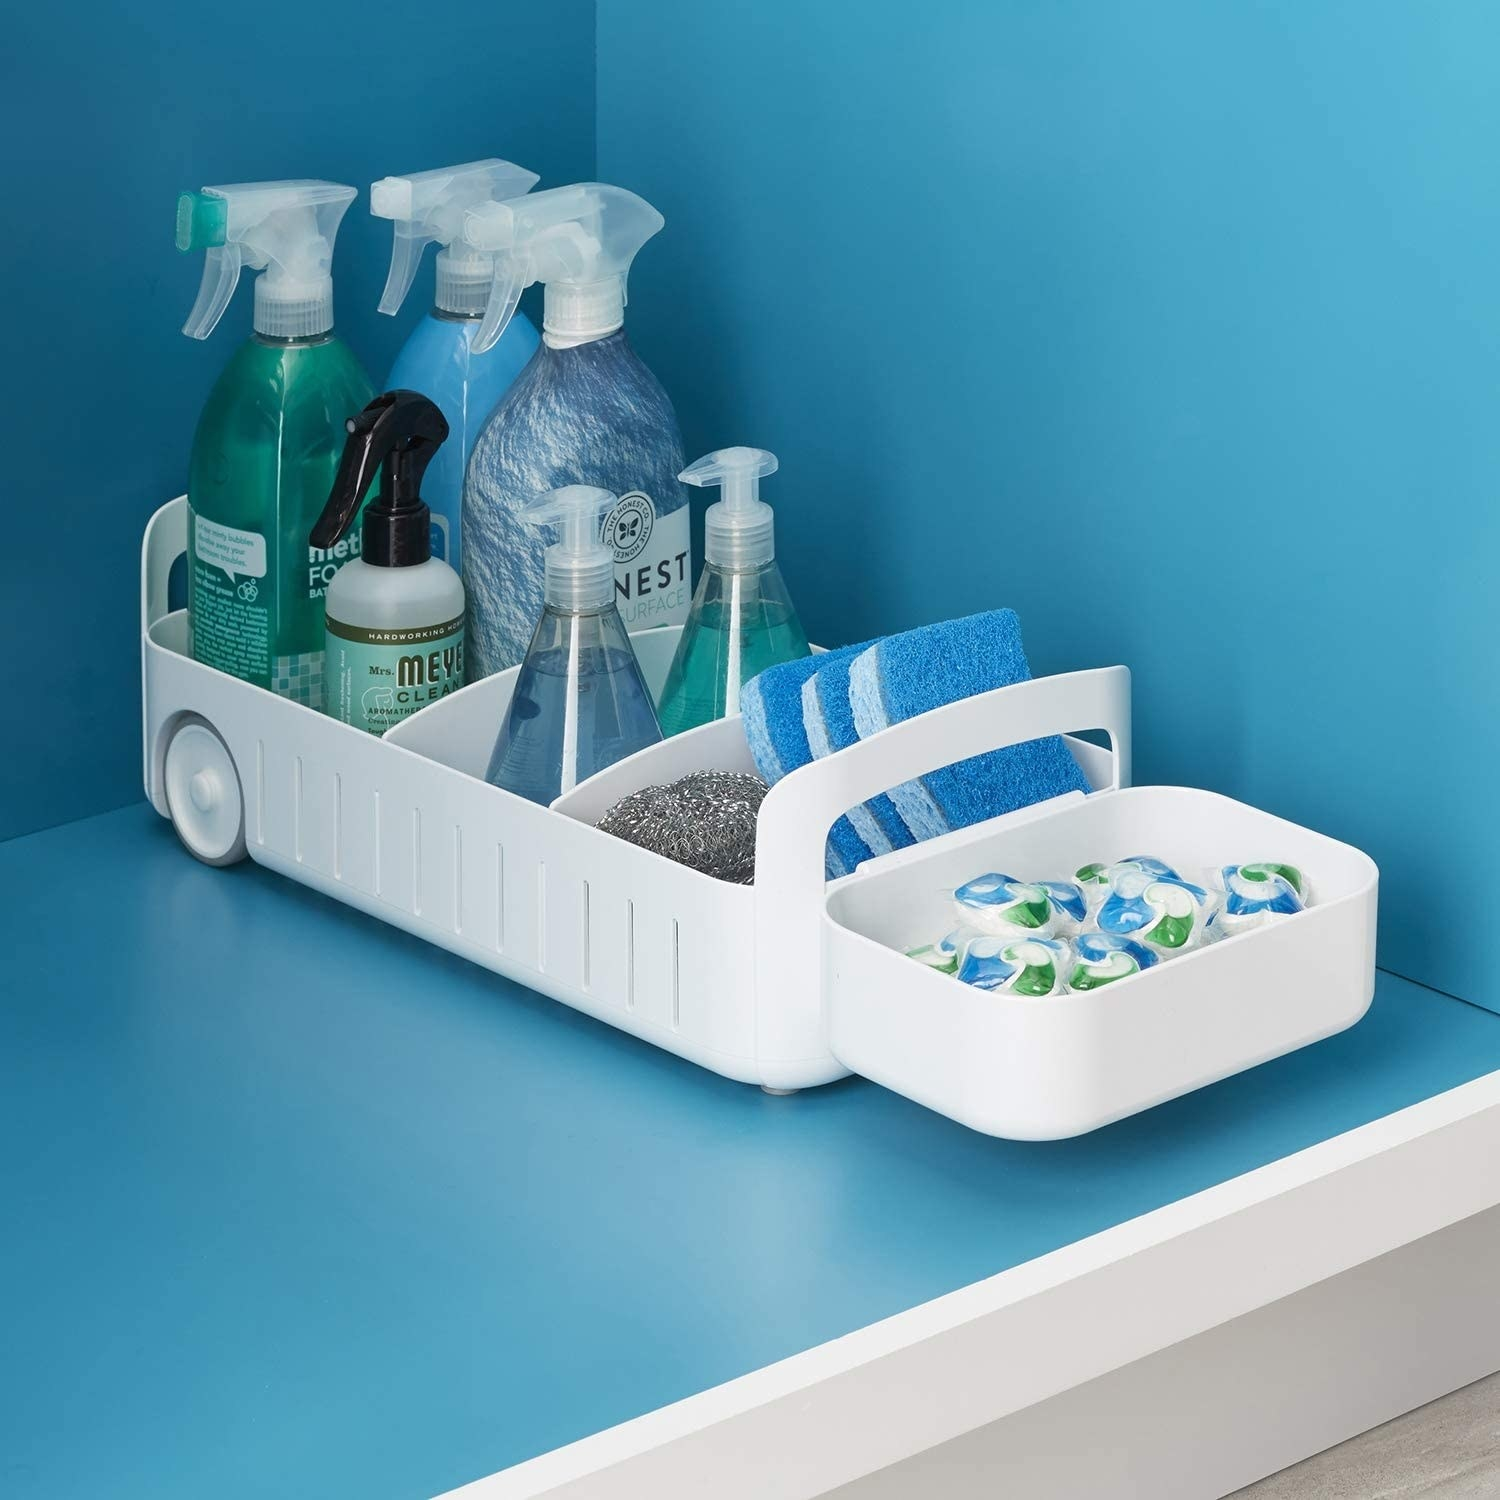 the caddy in a cabinet filled with cleaning products